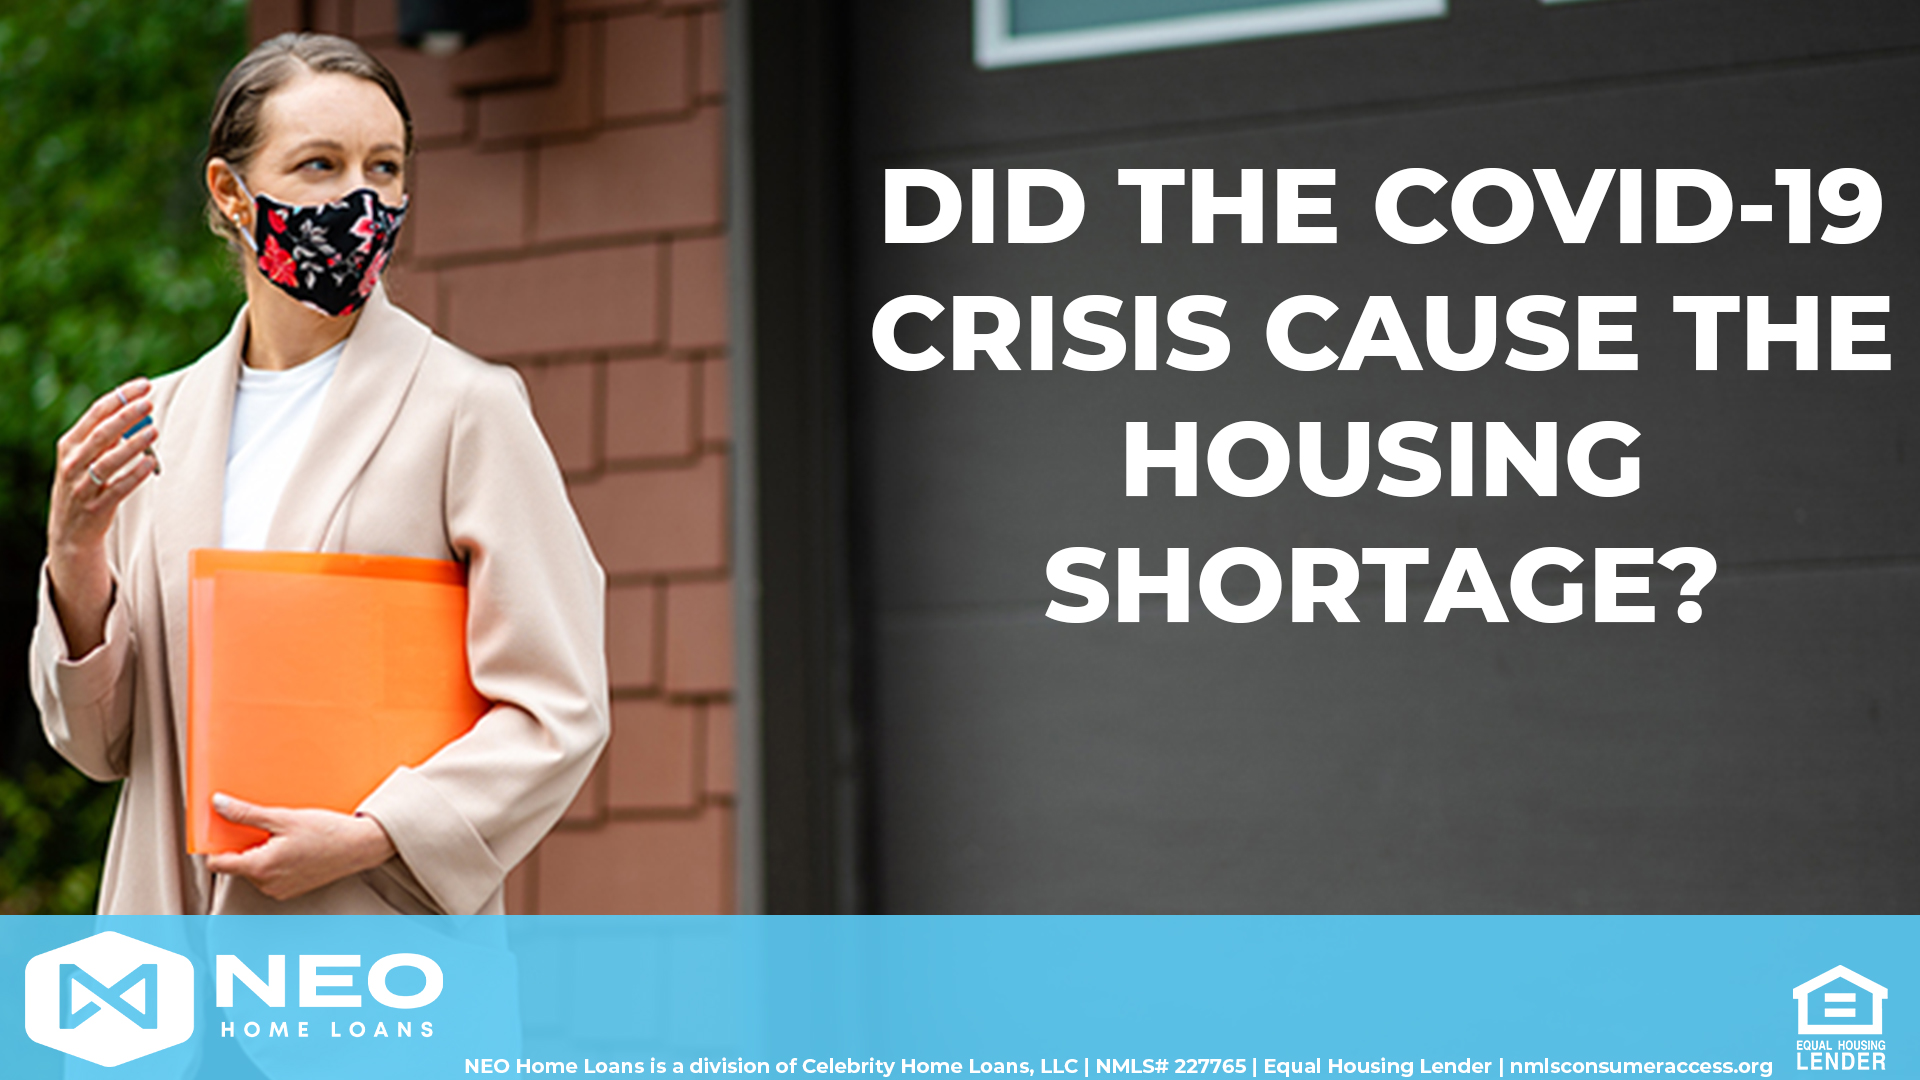 Did The COVID-19 Crisis Cause The Housing Shortage?